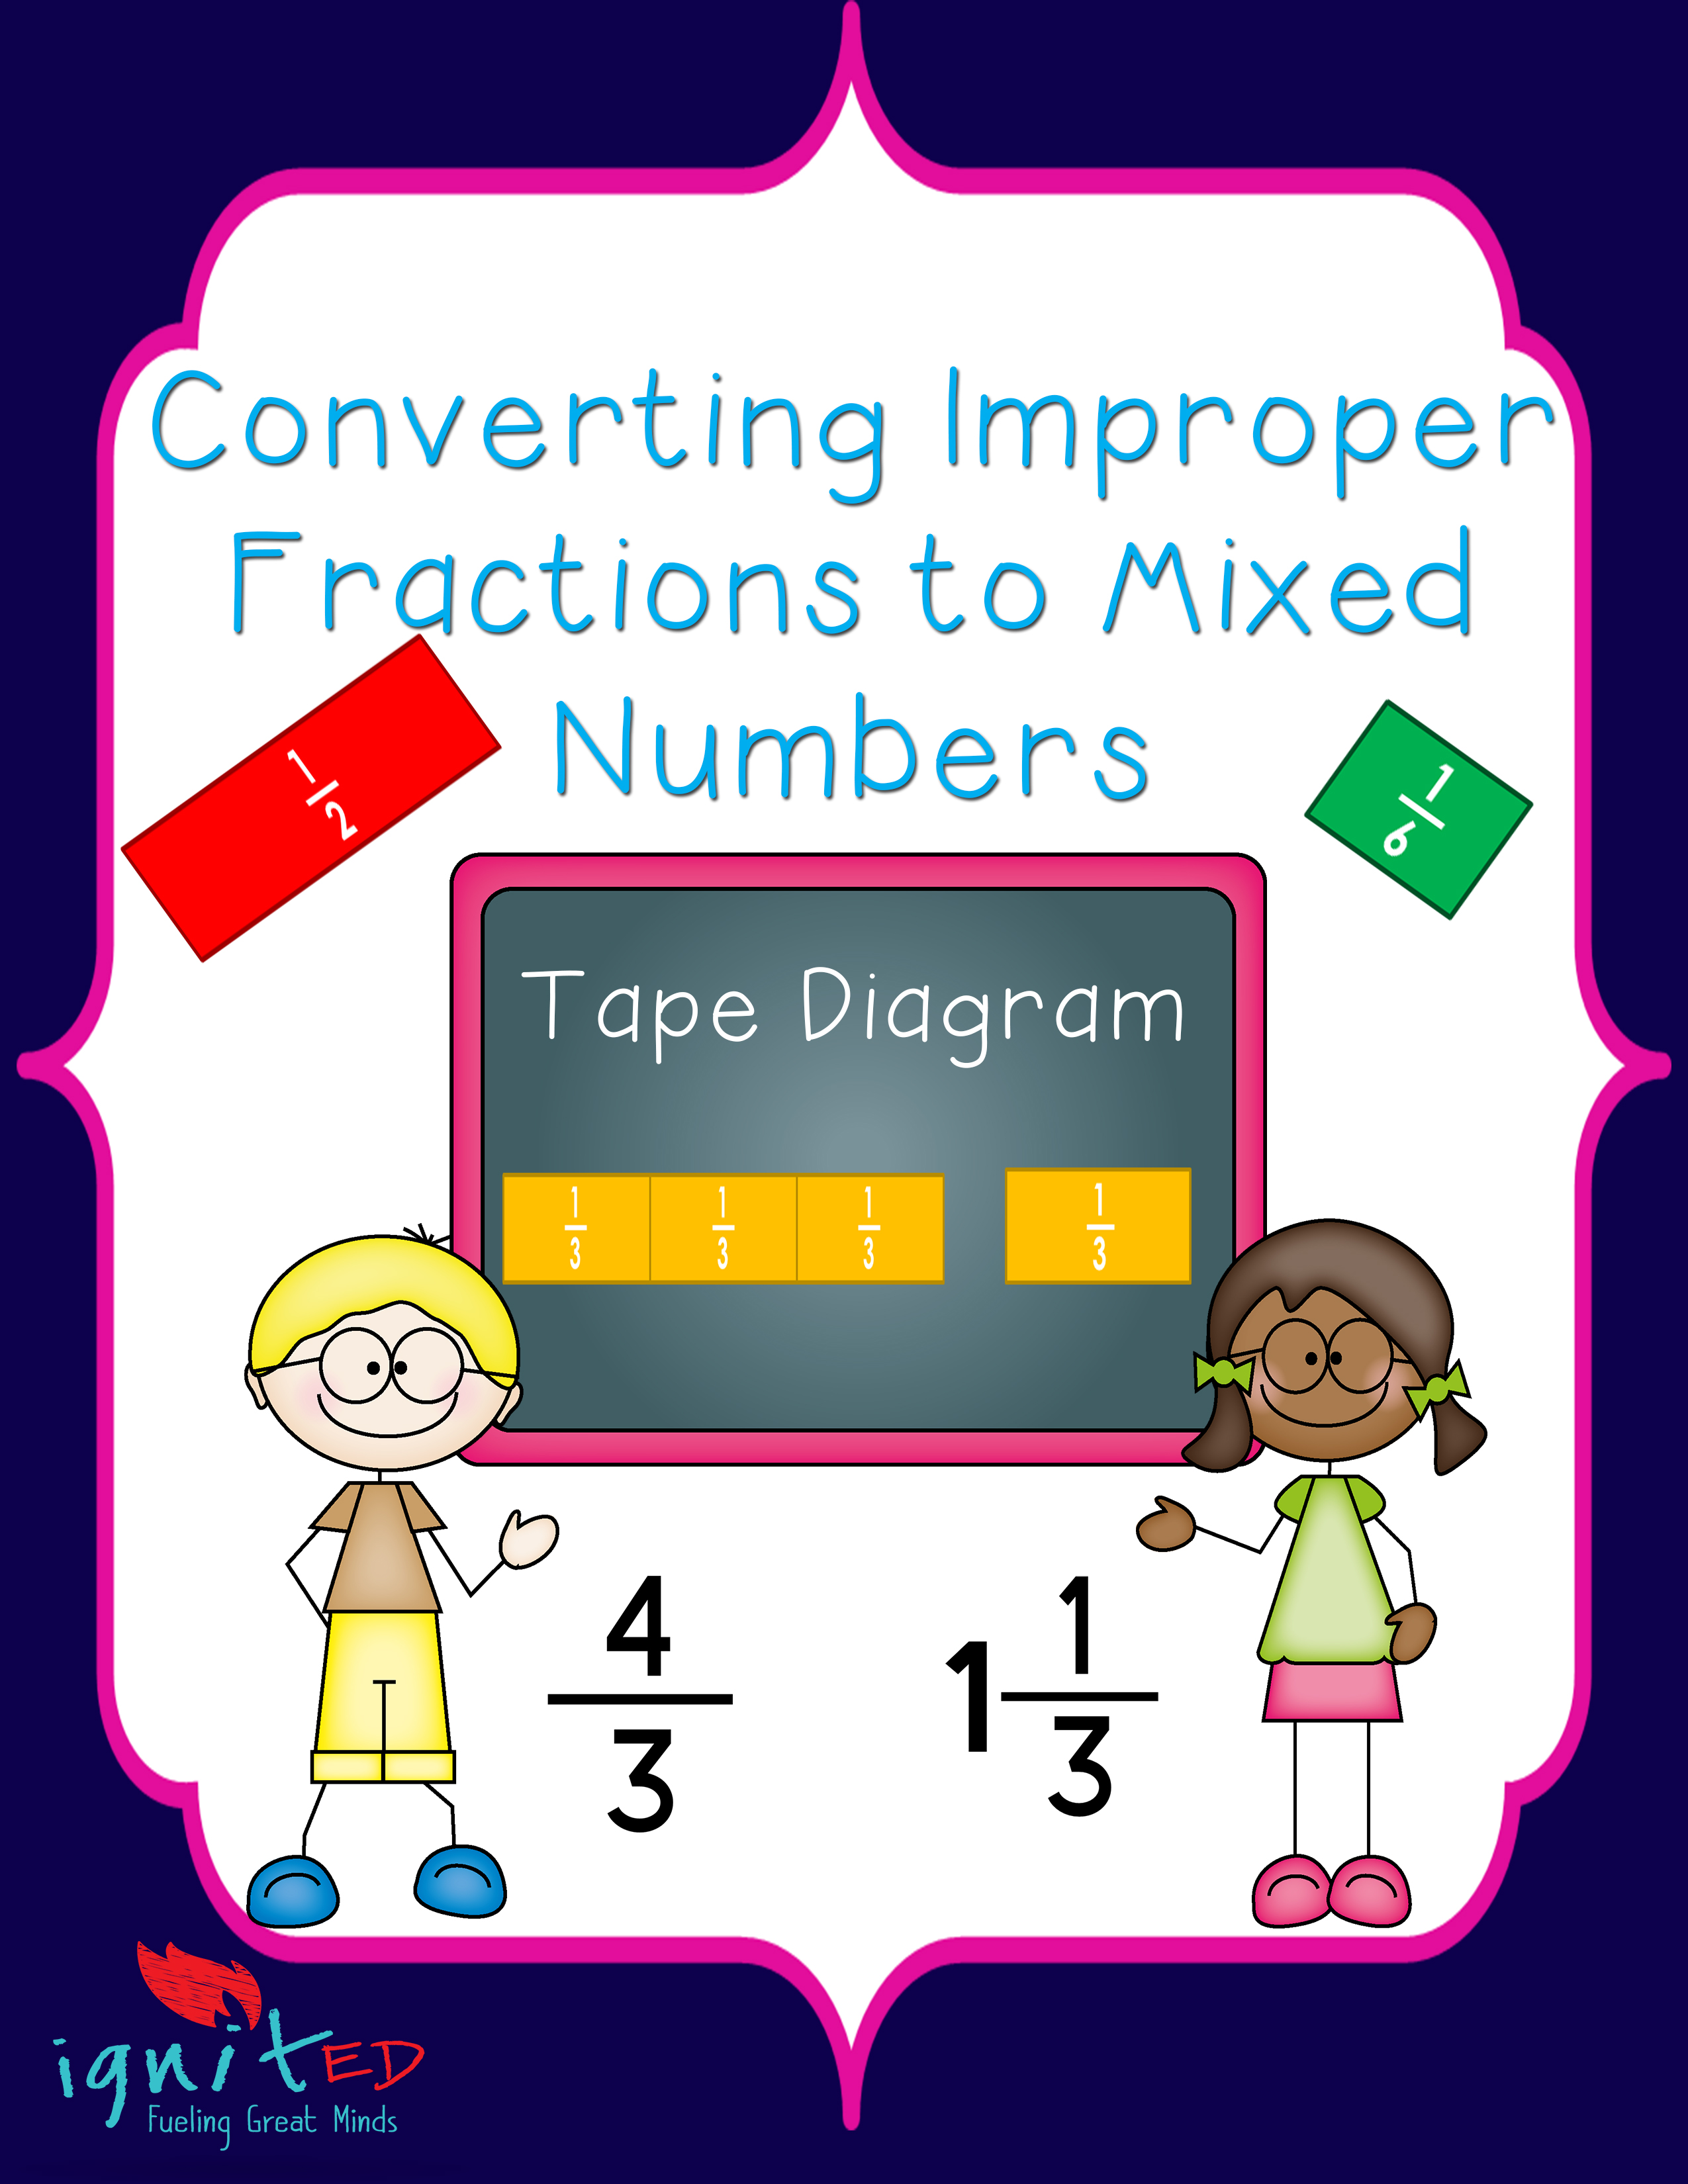 Tape Diagram Converting Improper Fractions To Mixed